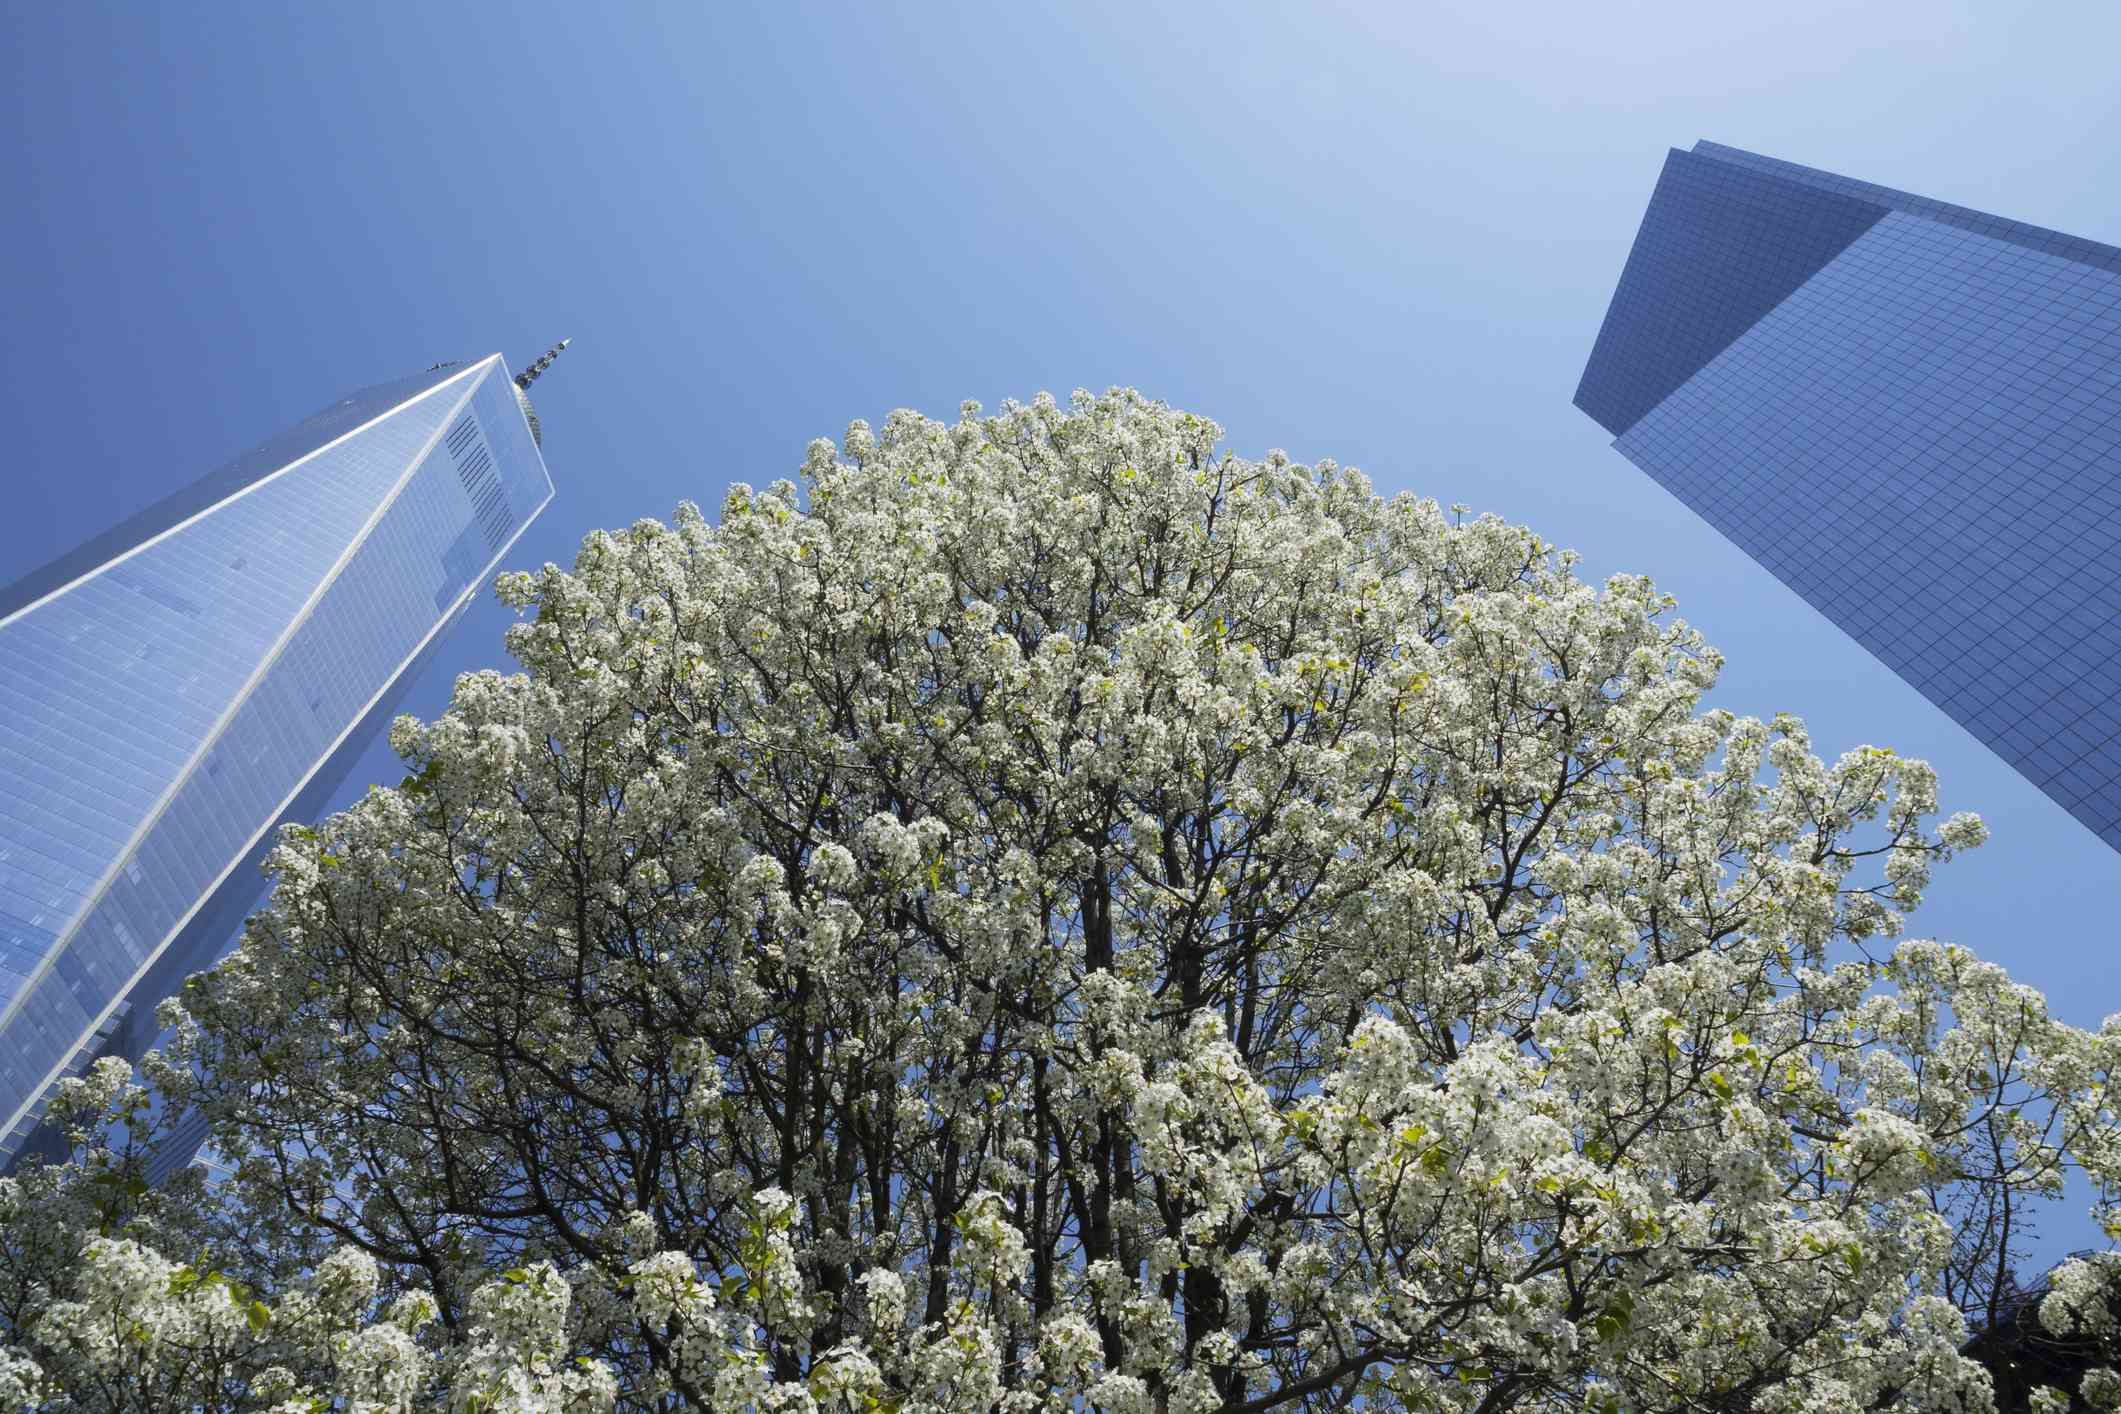 The Survivor Tree, a callery pear tree, at Ground Zero in New York